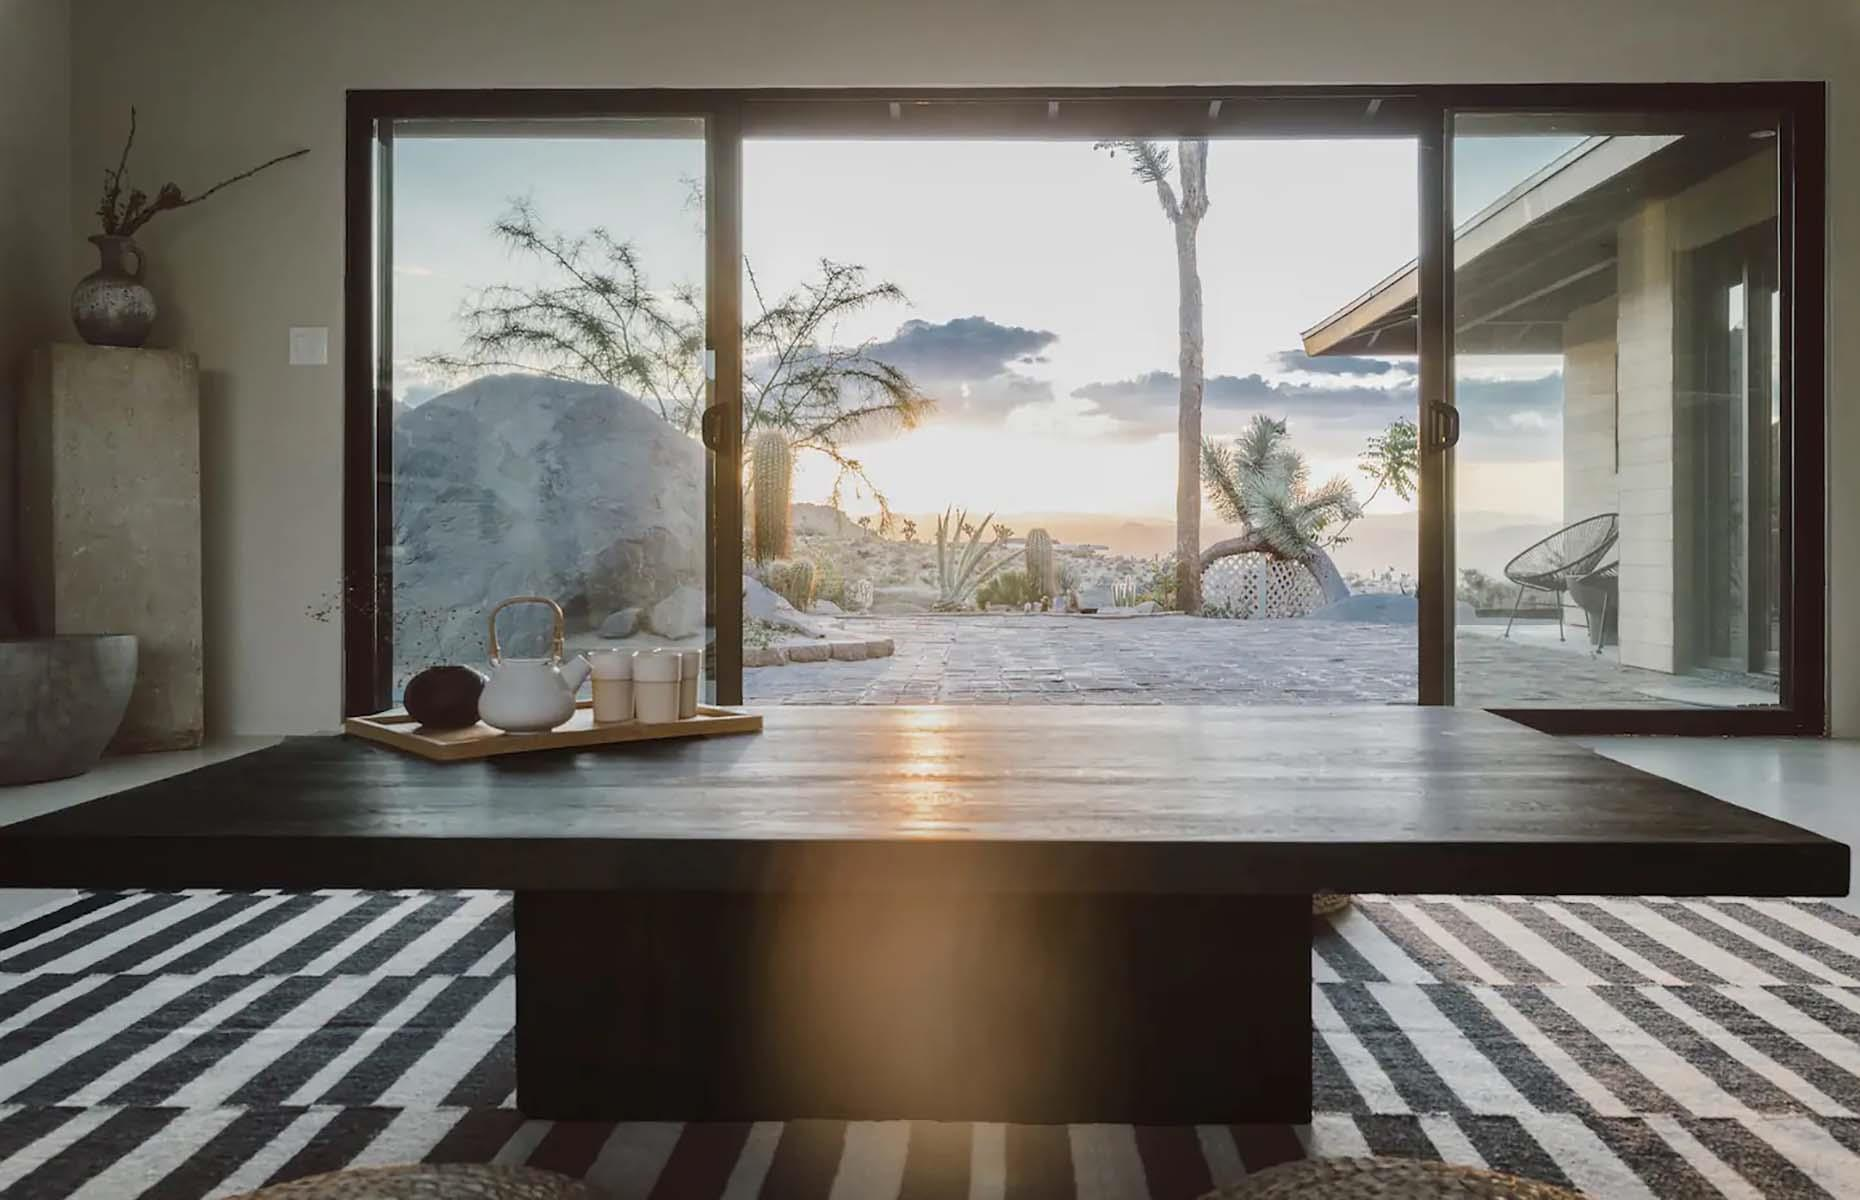 Slide 3 of 31: Surrounded by the truly unique landscape of Joshua Tree, Villa Kuro fits seamlessly into its surroundings. Originally built in the 1960s, the ranch-style house has been restored and transformed into a relaxing hideaway, framing the desert views with floor-to-ceiling picture windows. The property is located in front of an ancient boulder mountain and at night there are stargazing opportunities aplenty, either from the firepit area or the salt water hot tub. The entrance to Joshua Tree National Park is just a 10-minute drive away.